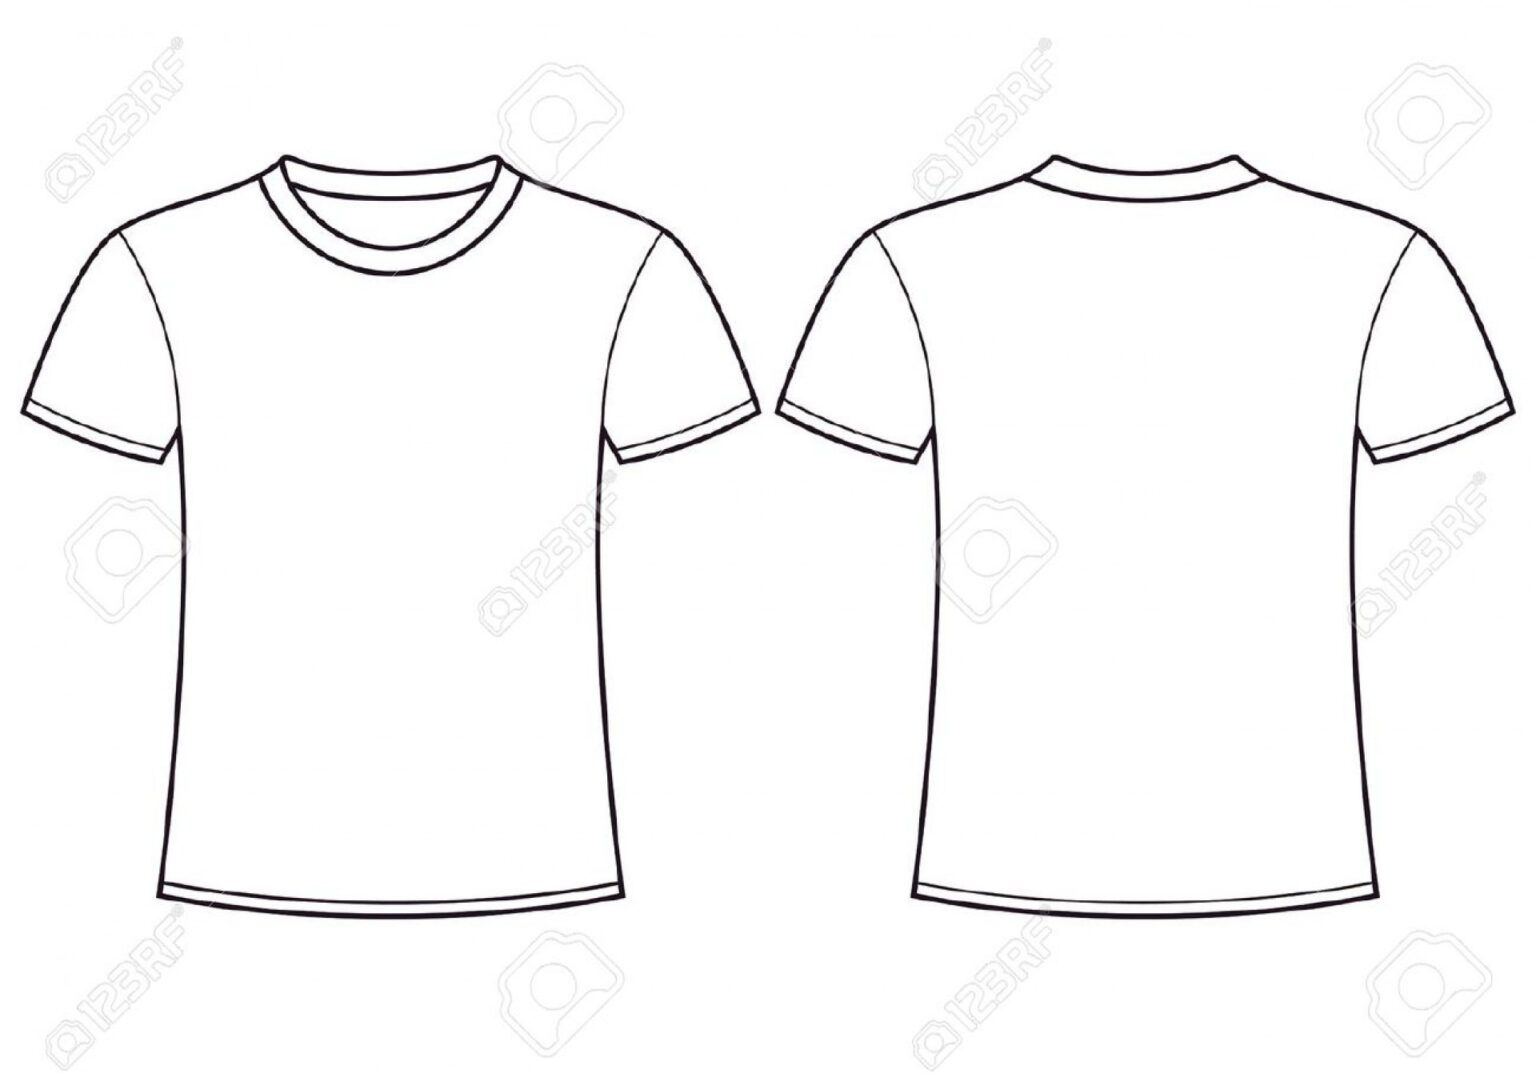 Download 006 Blank Tee Shirt Template T Shirts Vector Beautiful Ideas Within Printable Blank Tshirt Template Shirt Template T Shirt Design Template Blank T Shirts